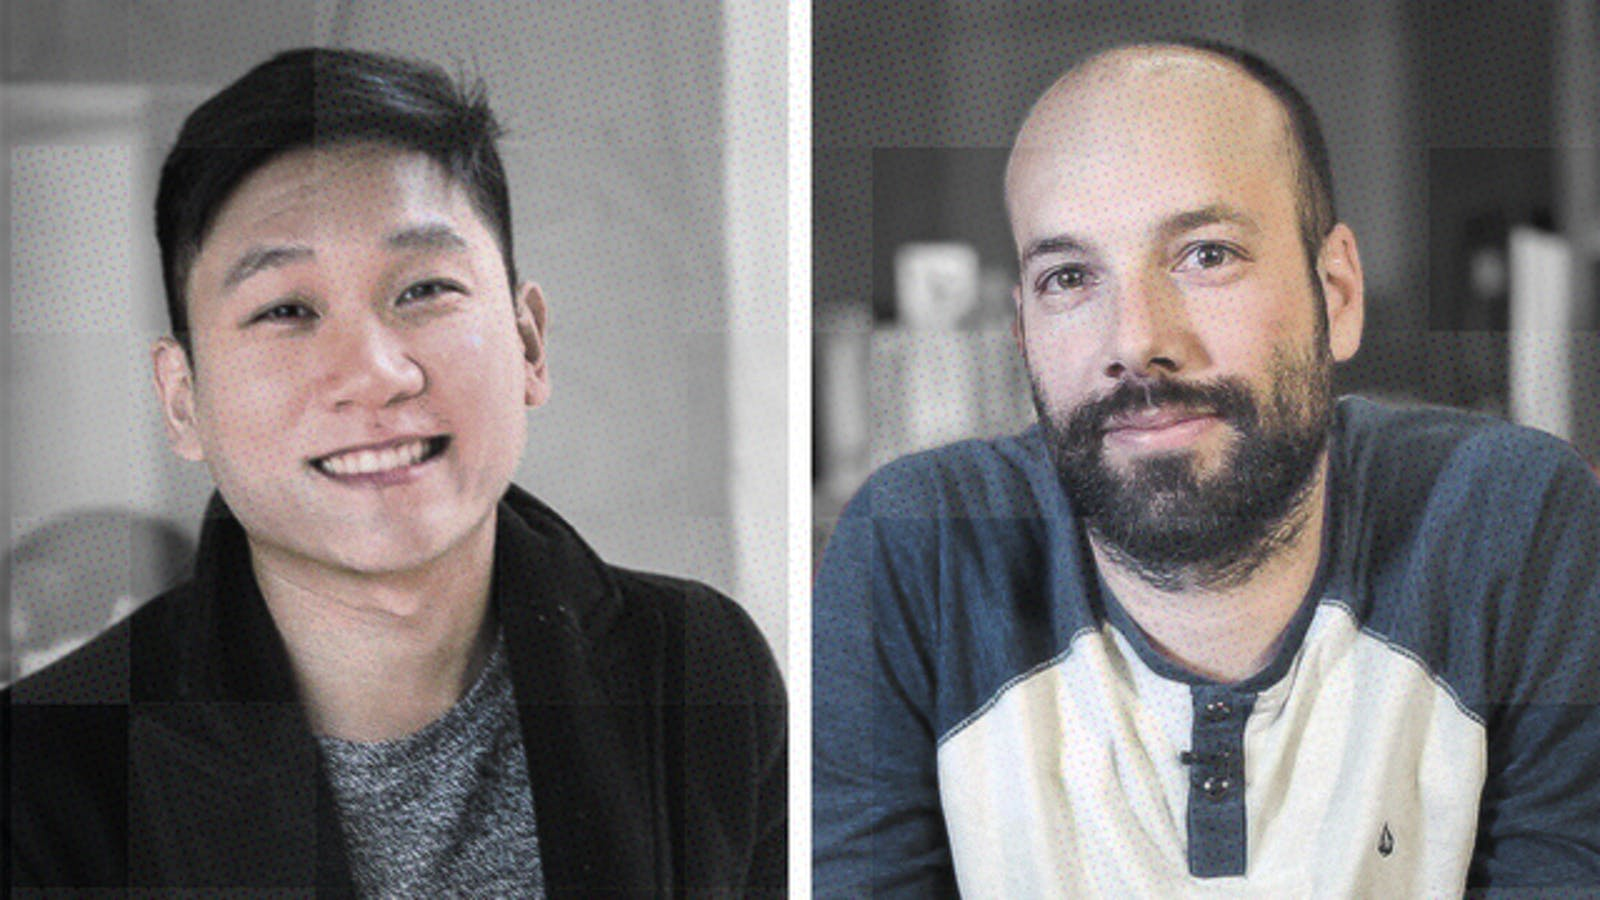 Sam Yam and Jack Conte. Photos by Patreon